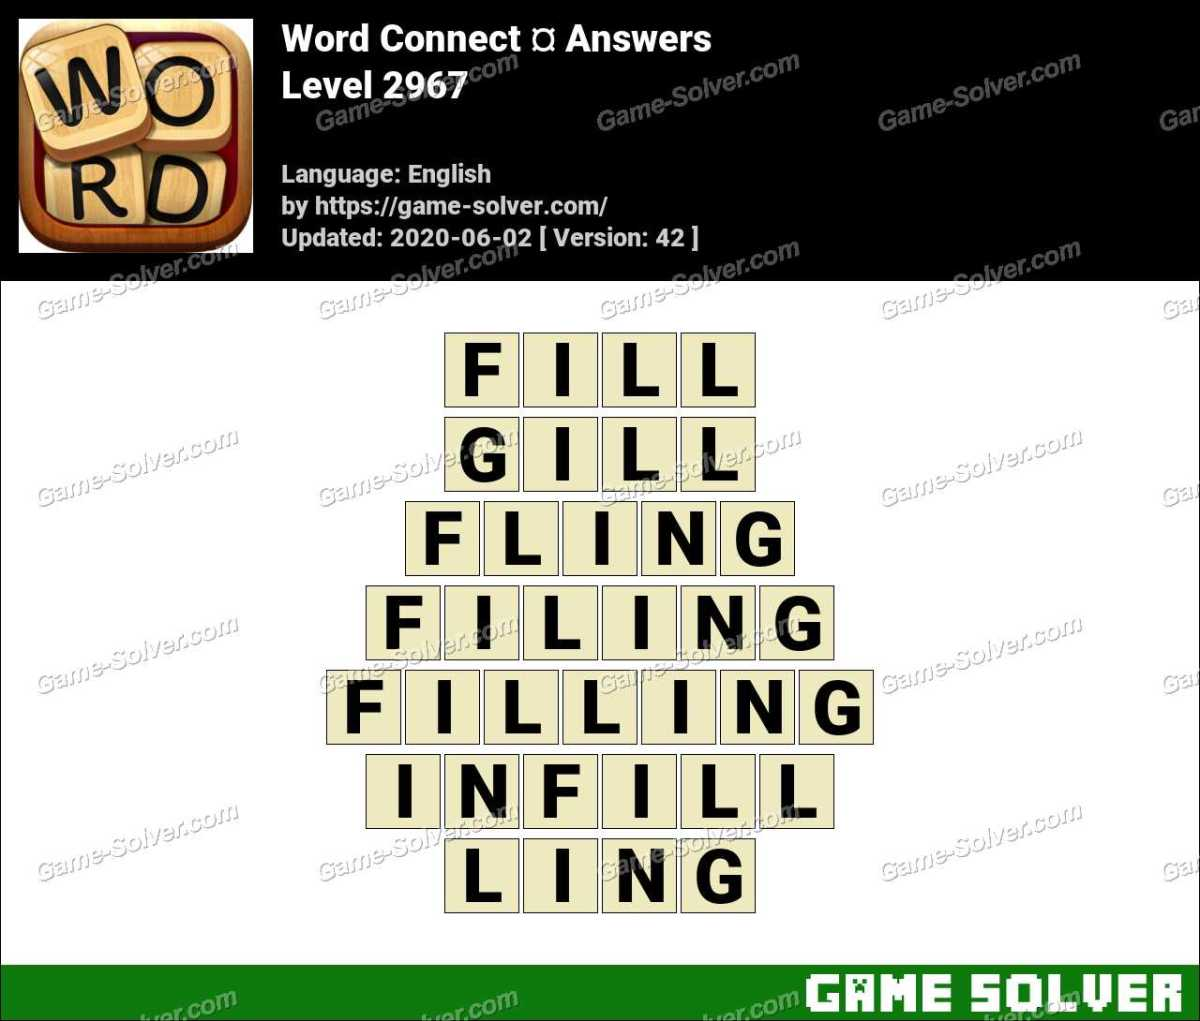 Word Connect Level 2967 Answers